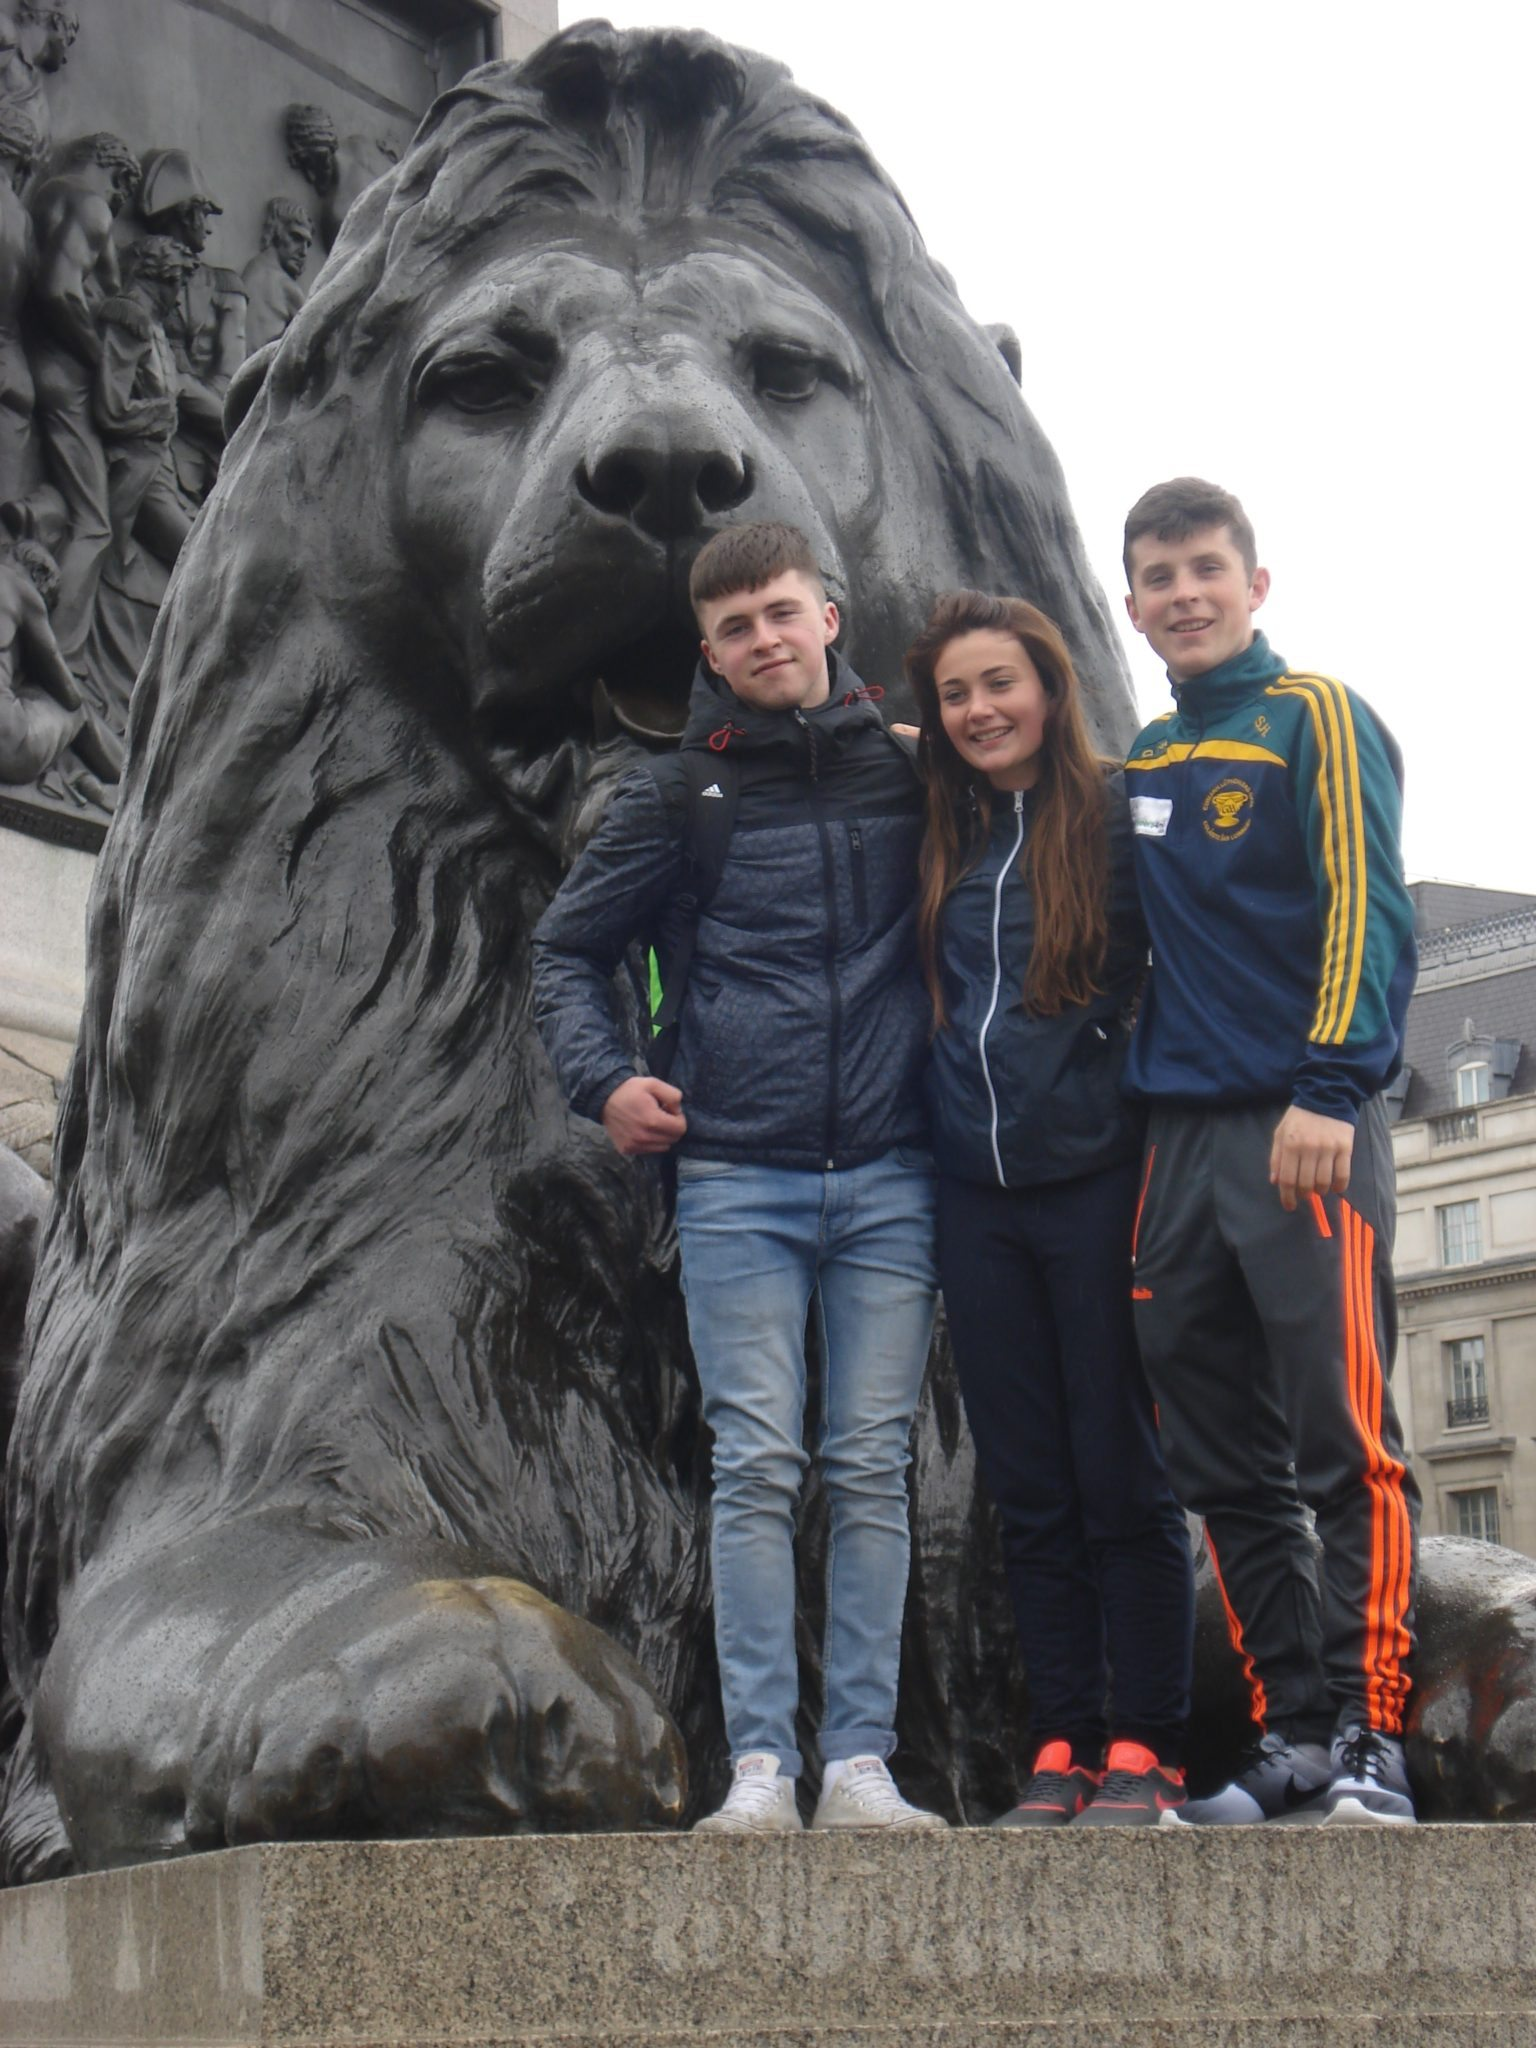 desmond college students Eoin Considine, Emma Herbert and Diarmuid Curtin pictured beside one of the lions at trafalgar square london england on their school trip for ty students april 2015